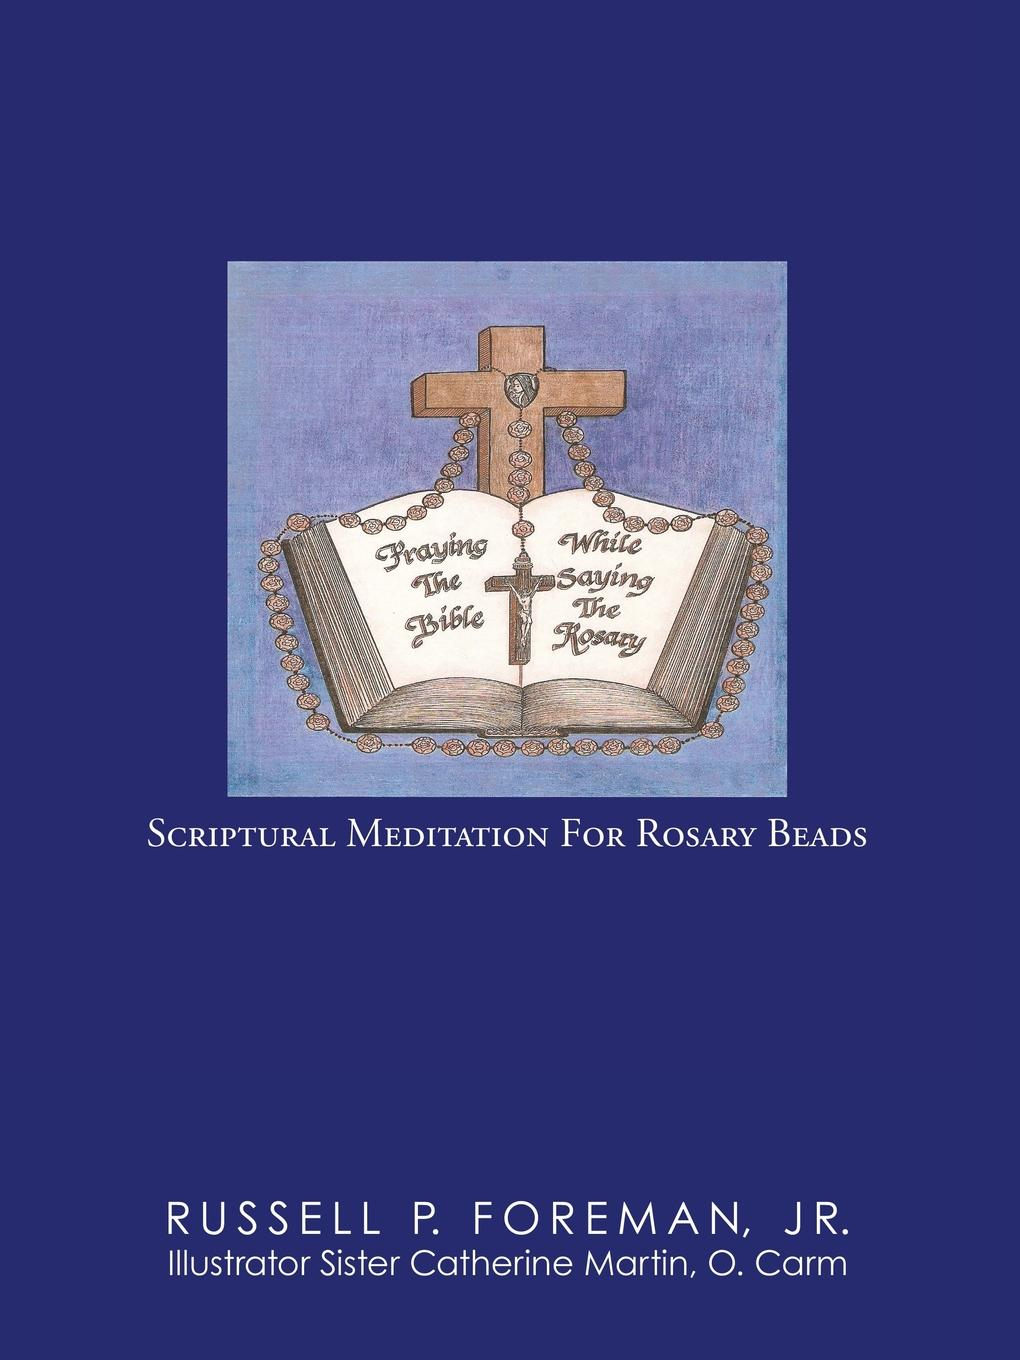 Jr. Russell P. Foreman Praying The Bible While Saying The Rosary. Scriptural Meditation For Rosary Beads jr russell p foreman praying the bible while saying the rosary scriptural meditation for rosary beads